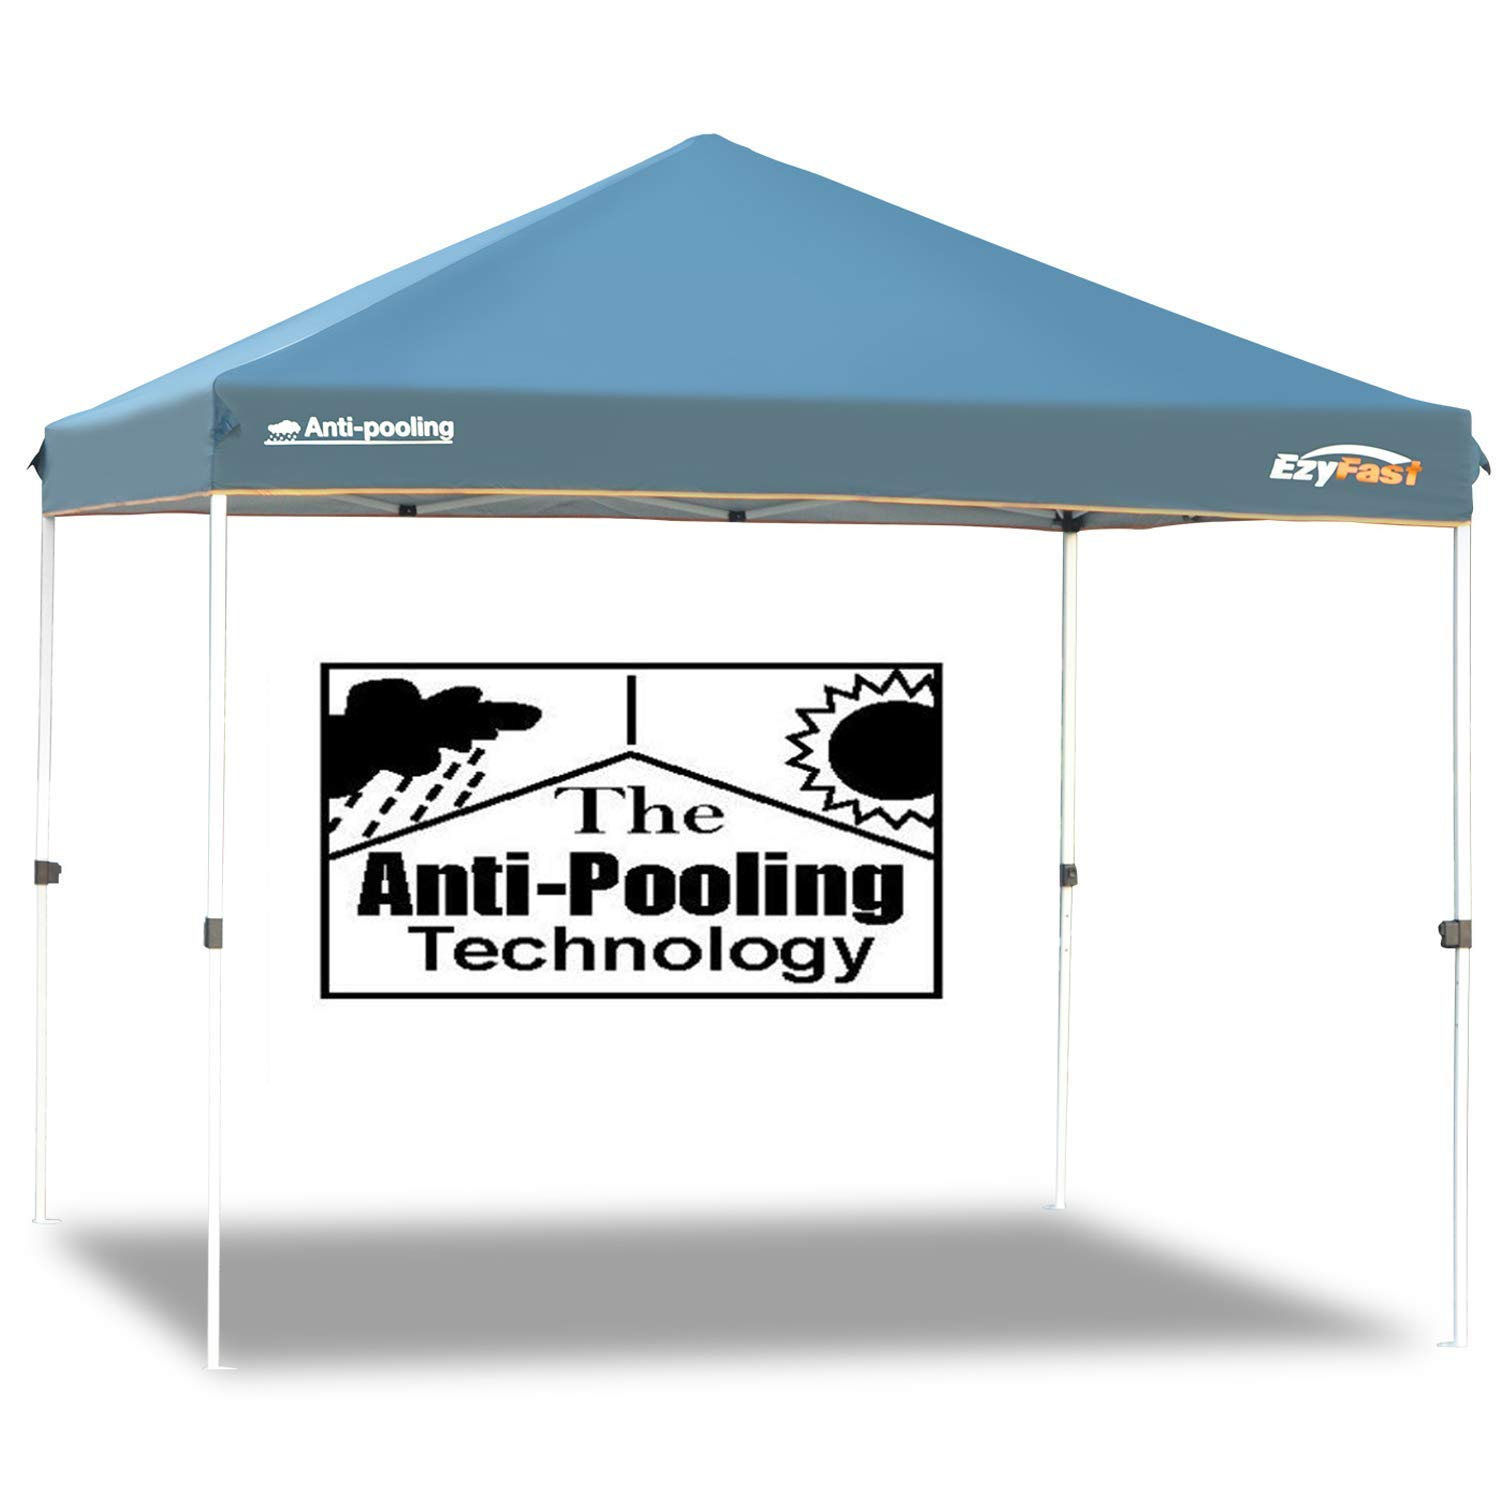 EzyFast Patented Anti-Pooling Instant Beach Canopy Shelter for Rain or Sunshine, Portable 10ft x 10ft Straight Leg Pop Up Shade Tent with Wheeled Carry Bag